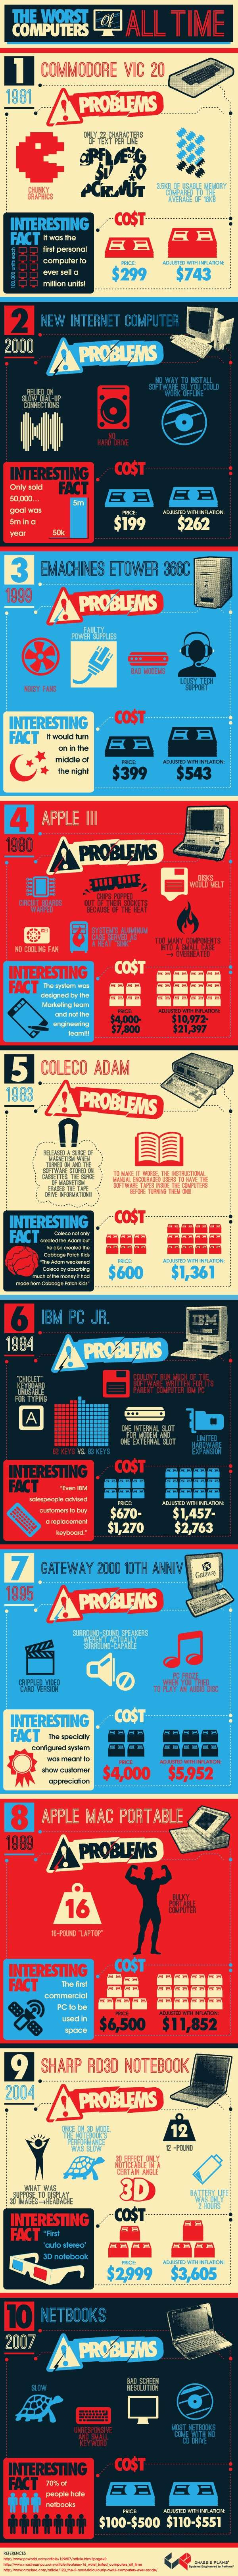 The Worst Computers of All Time Infographic